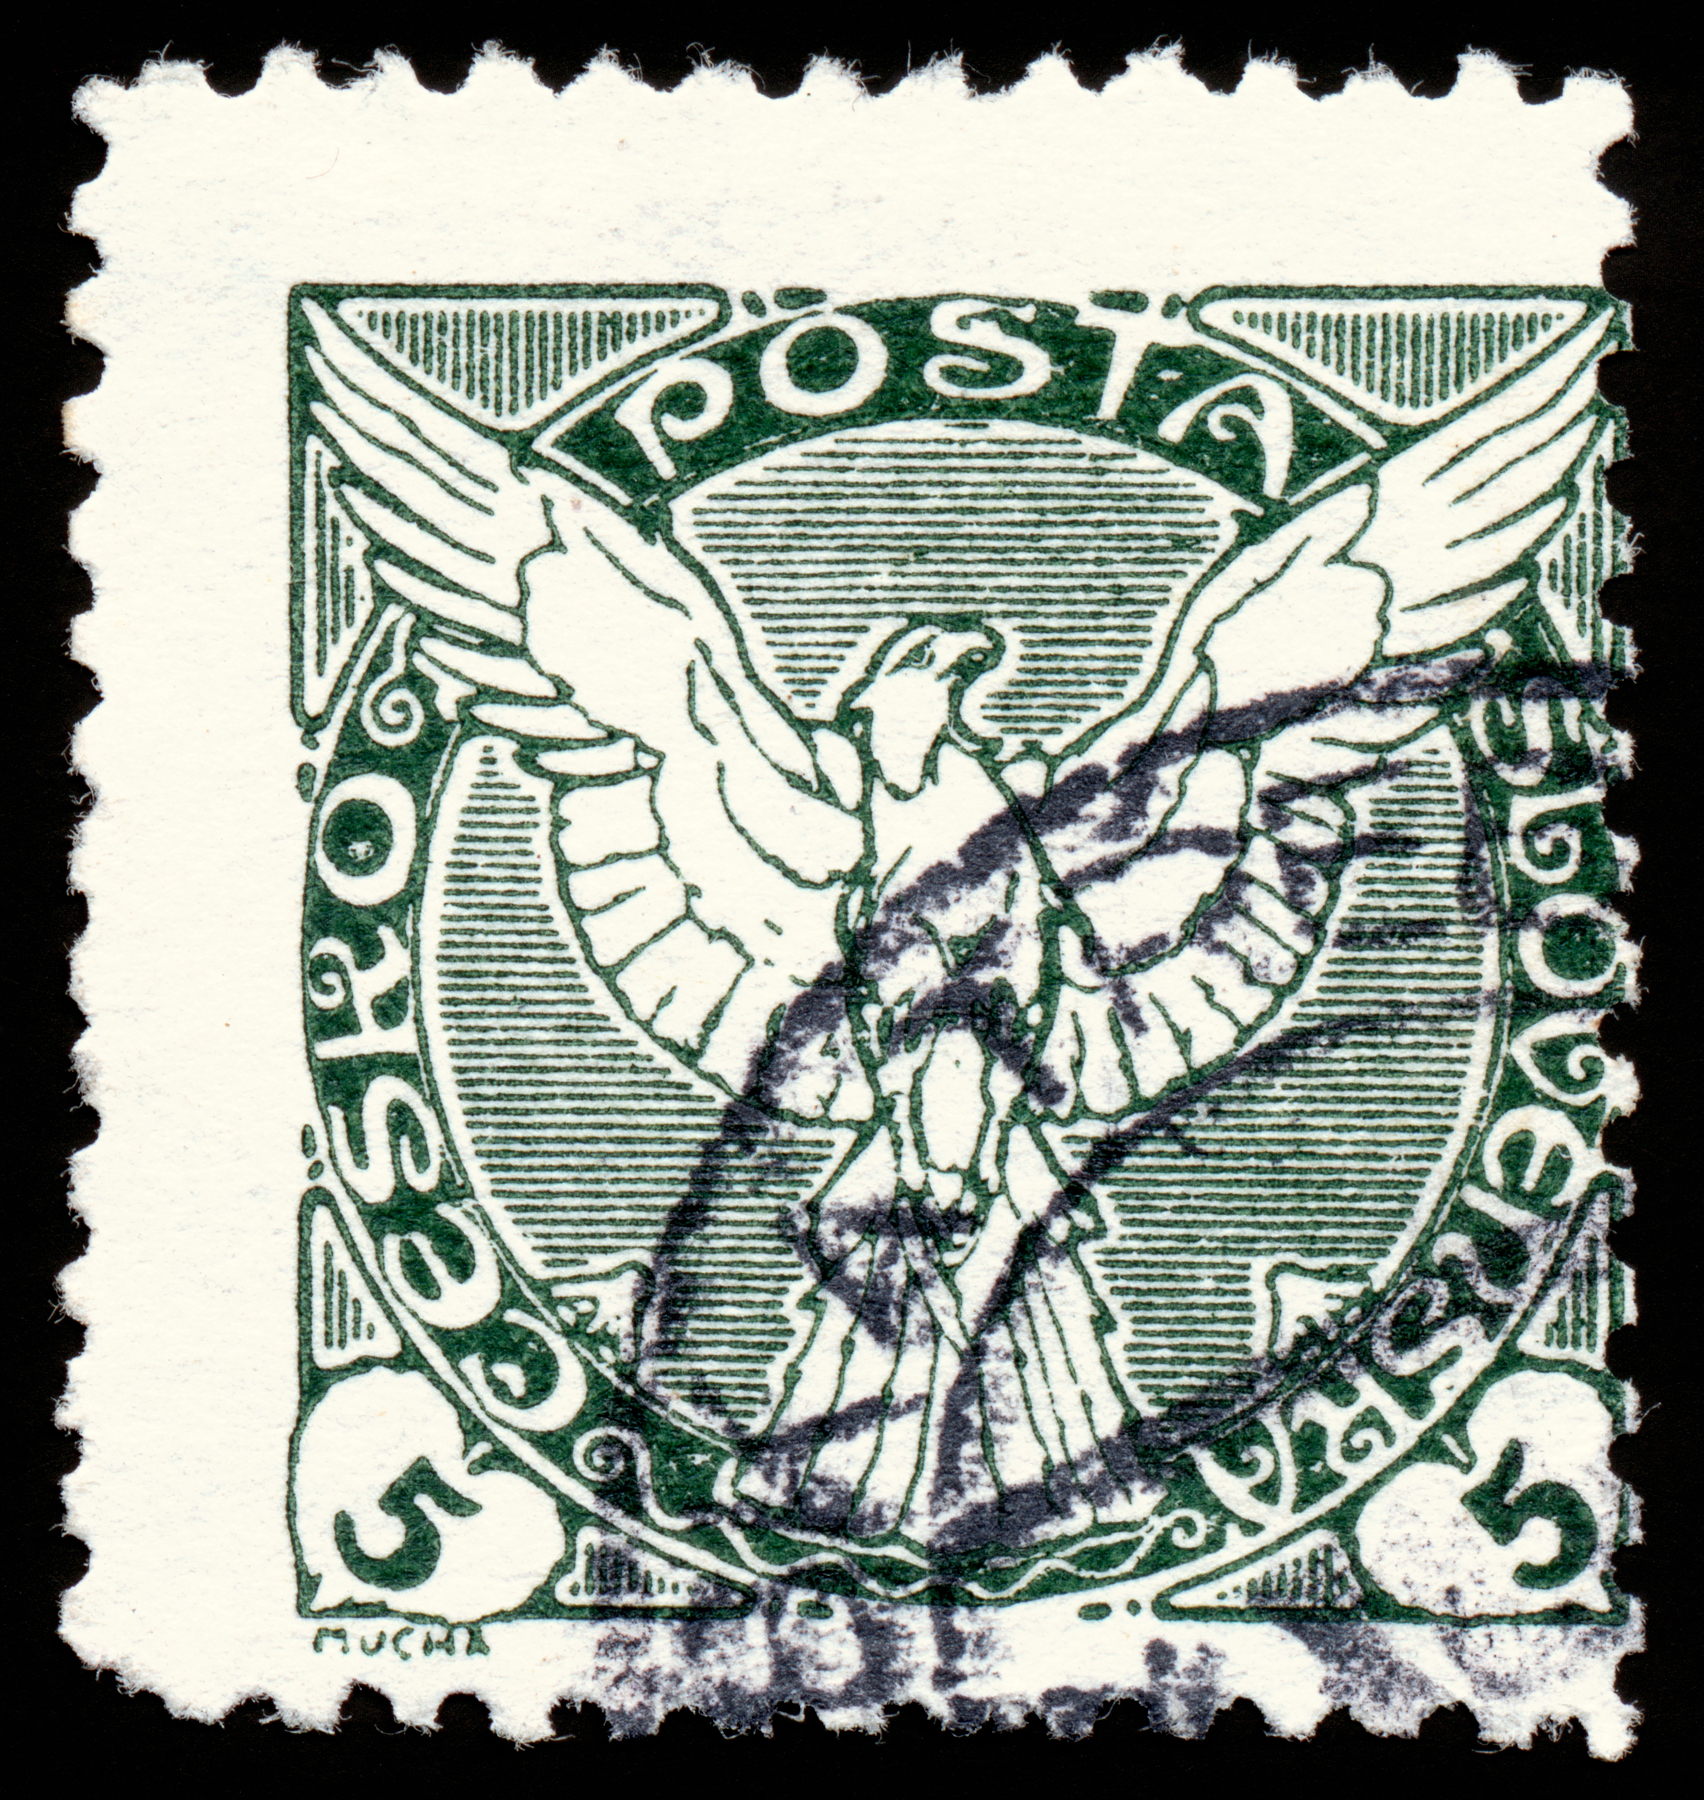 Green Falcon Stamp, Rectangular, Rectangle, Res, Resolution, HQ Photo